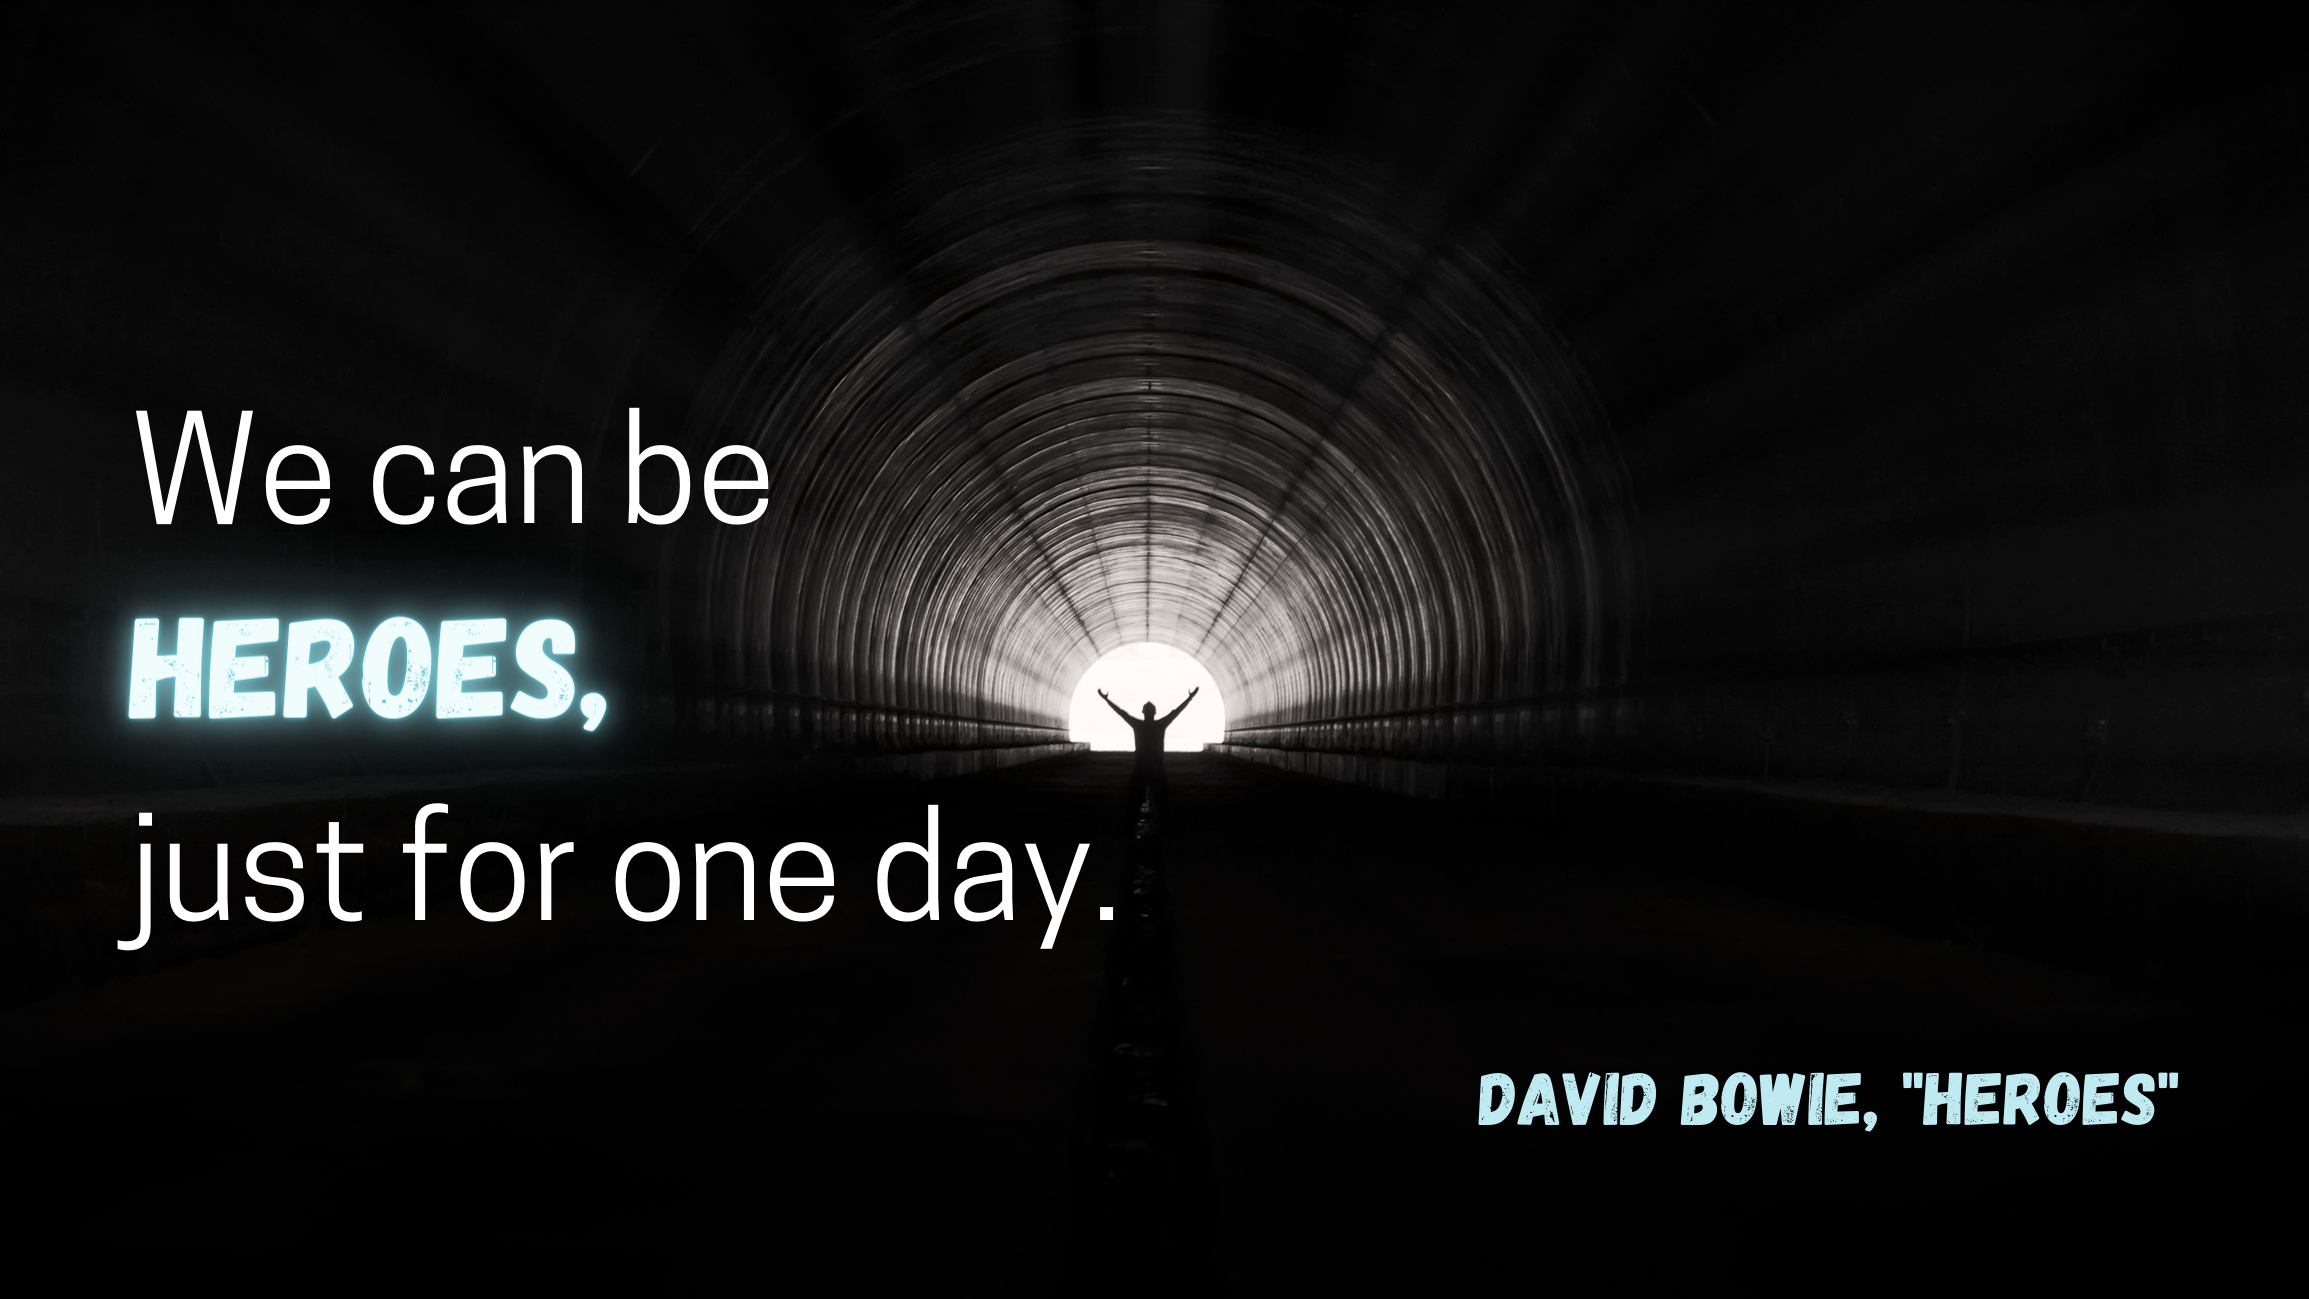 """""""We can be heroes, just for one day"""" by Bowie over a person at the end of a tunnel"""